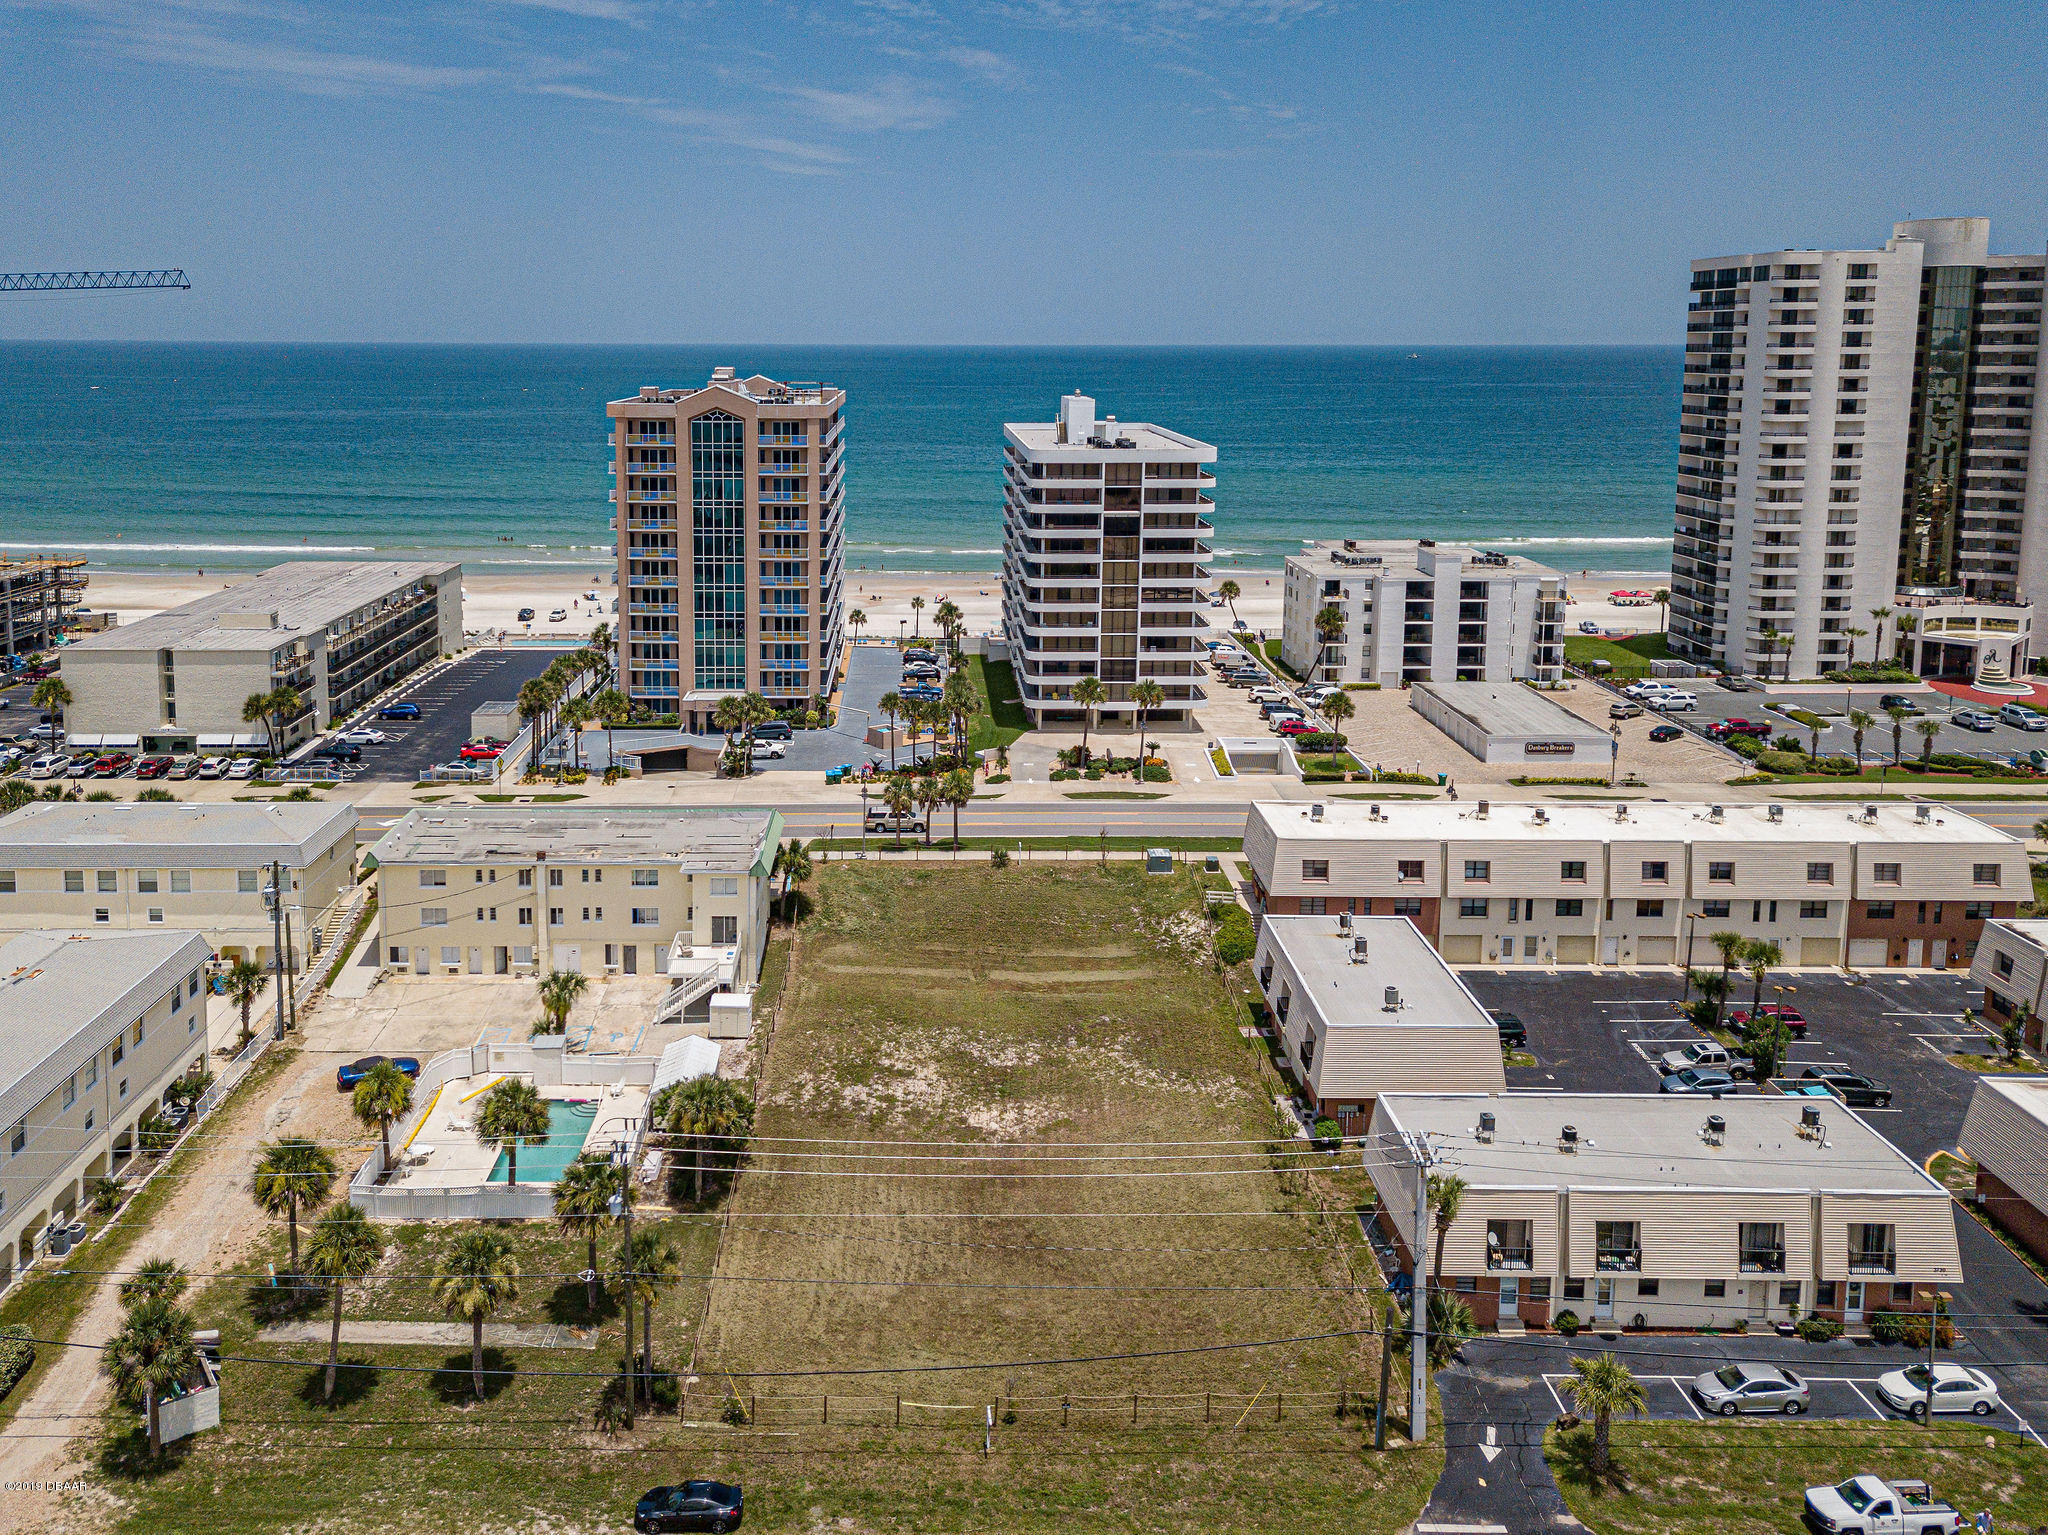 3742 S Atlantic Avenue, one of homes for sale in Daytona Beach Shores